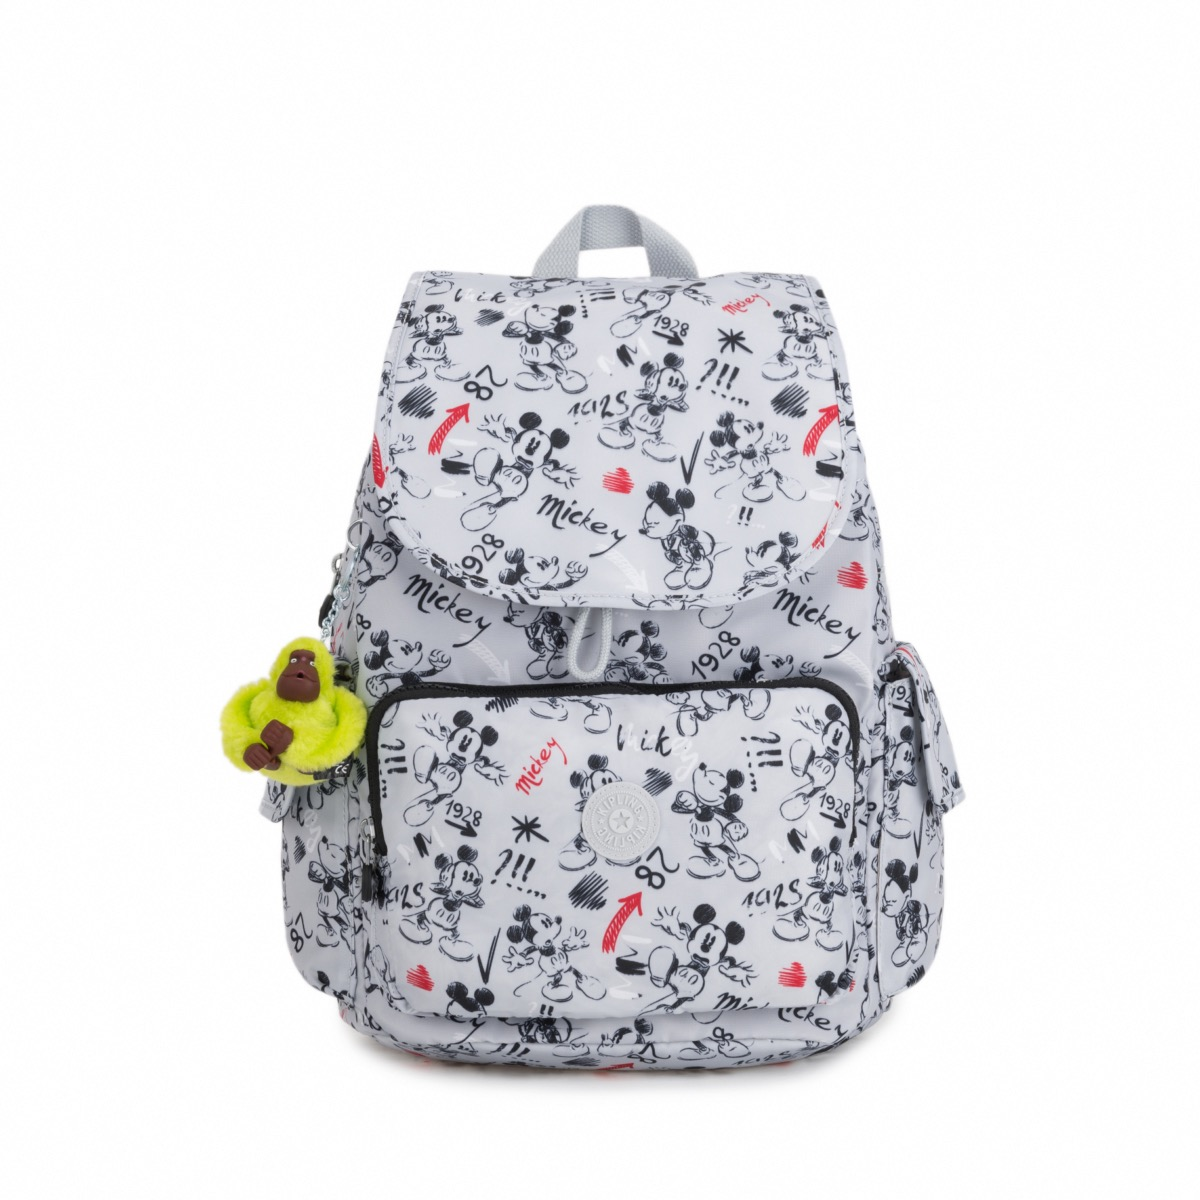 b25d882af79 Kipling Disney Collection Bags and Accessories